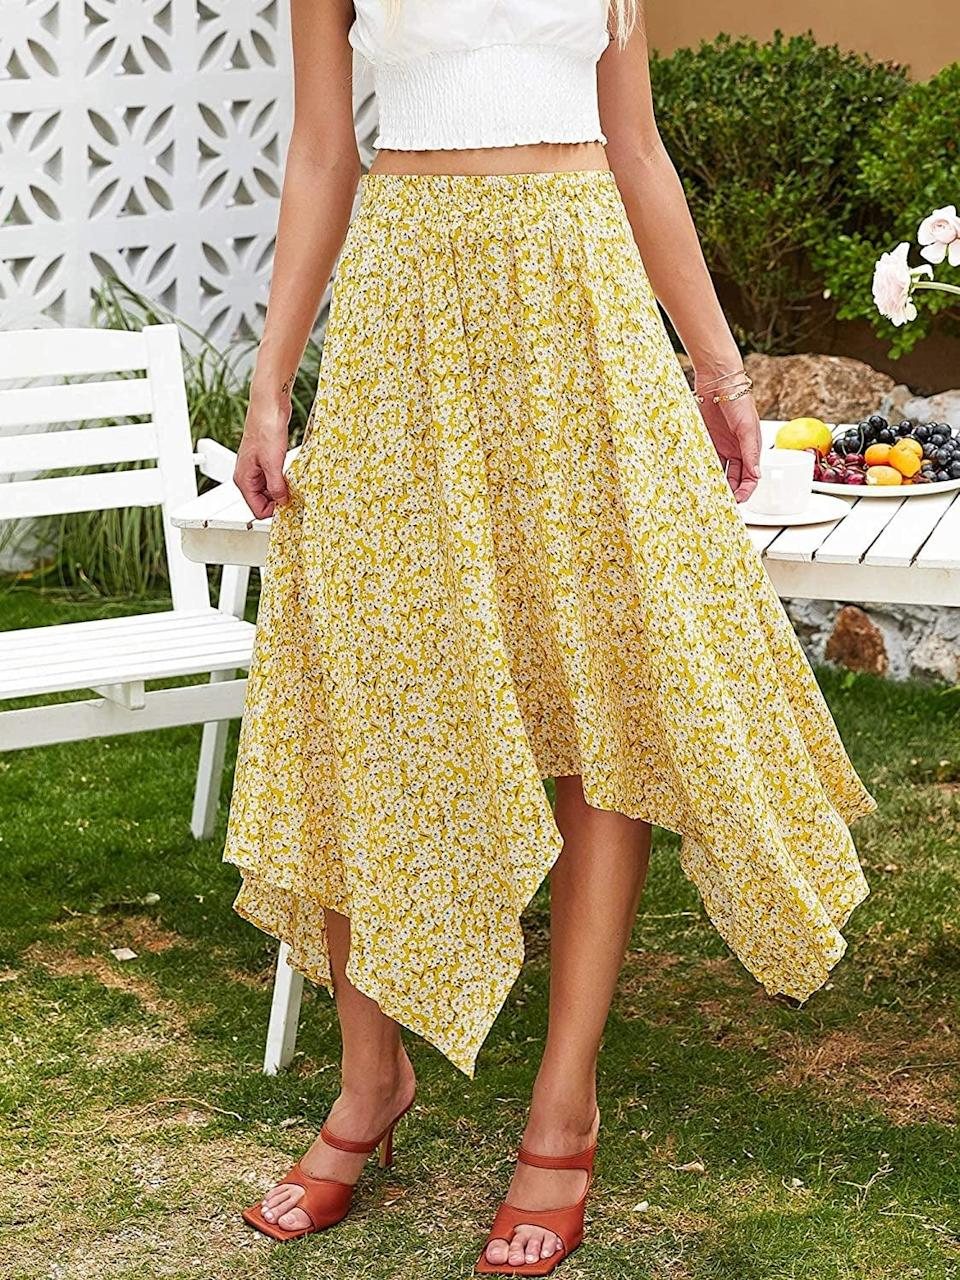 <p>You can't go wrong with a floral flowy skirt and this <span>Hibluco Women's High Waist Asymmetrical Boho Midi Skirt</span> ($27) is such a cute find. You can dress it up or down and look chic either way. </p>